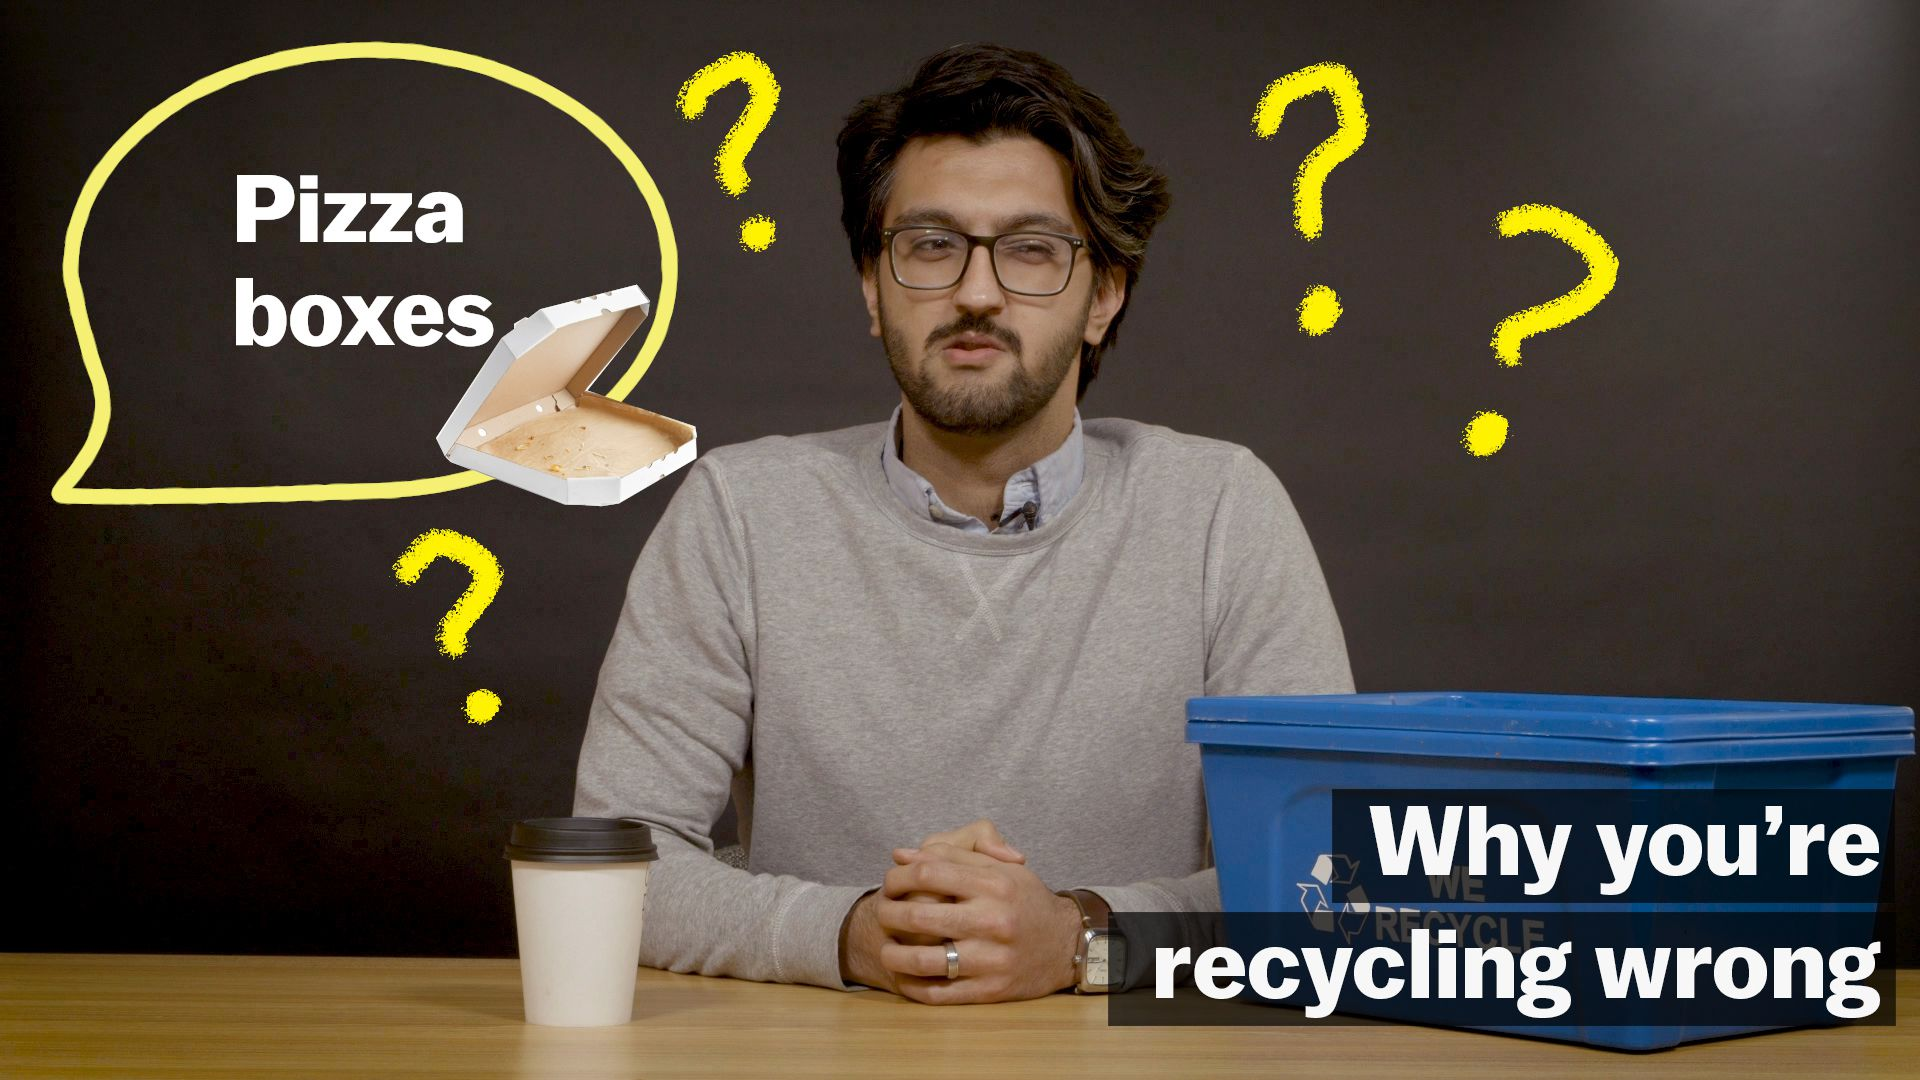 Why you're recycling wrong